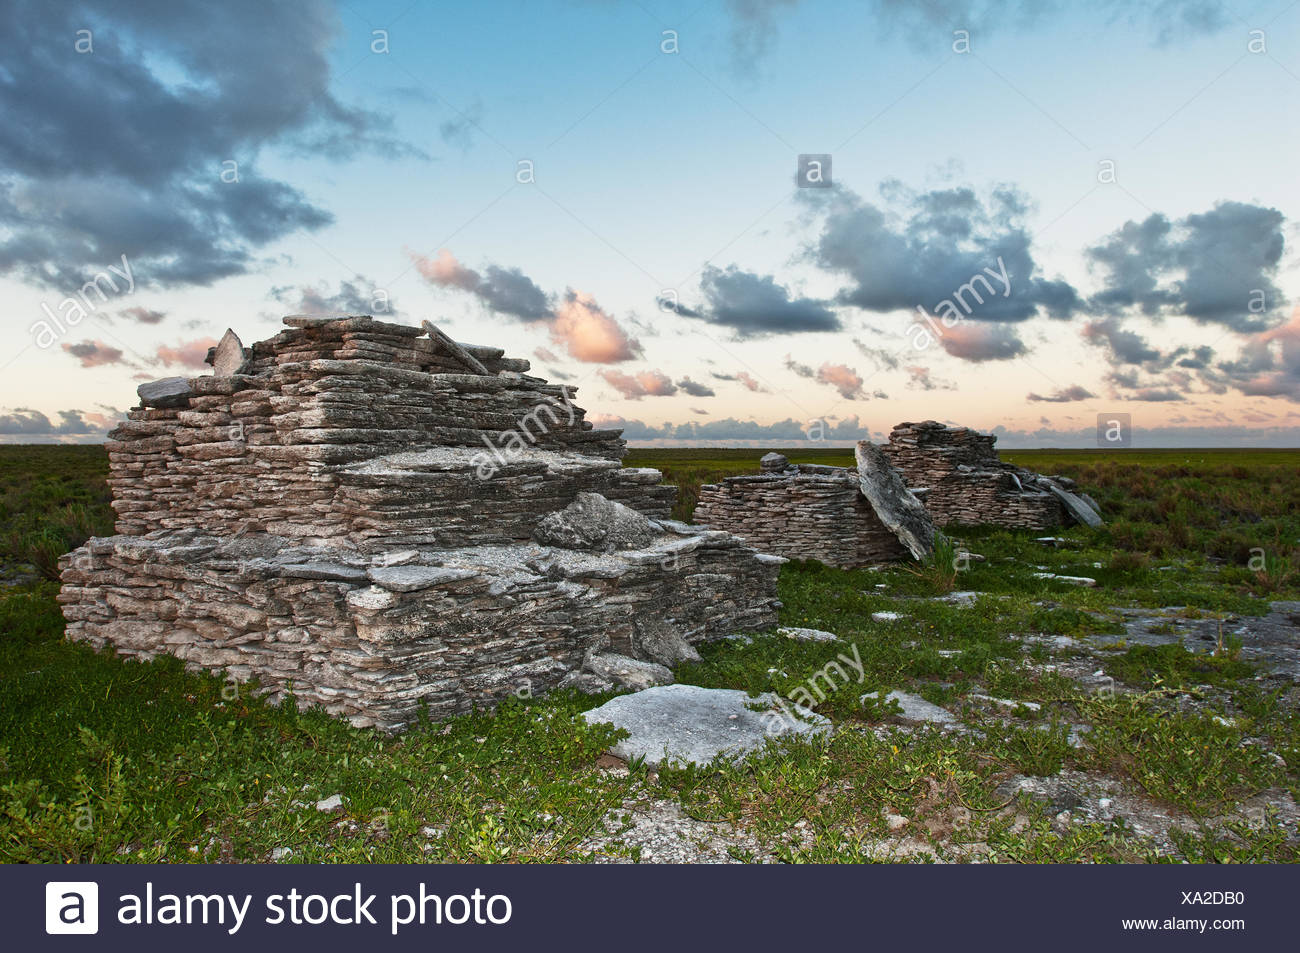 Polynesian tombs on Malden Island in the Southern Line Islands. - Stock Image